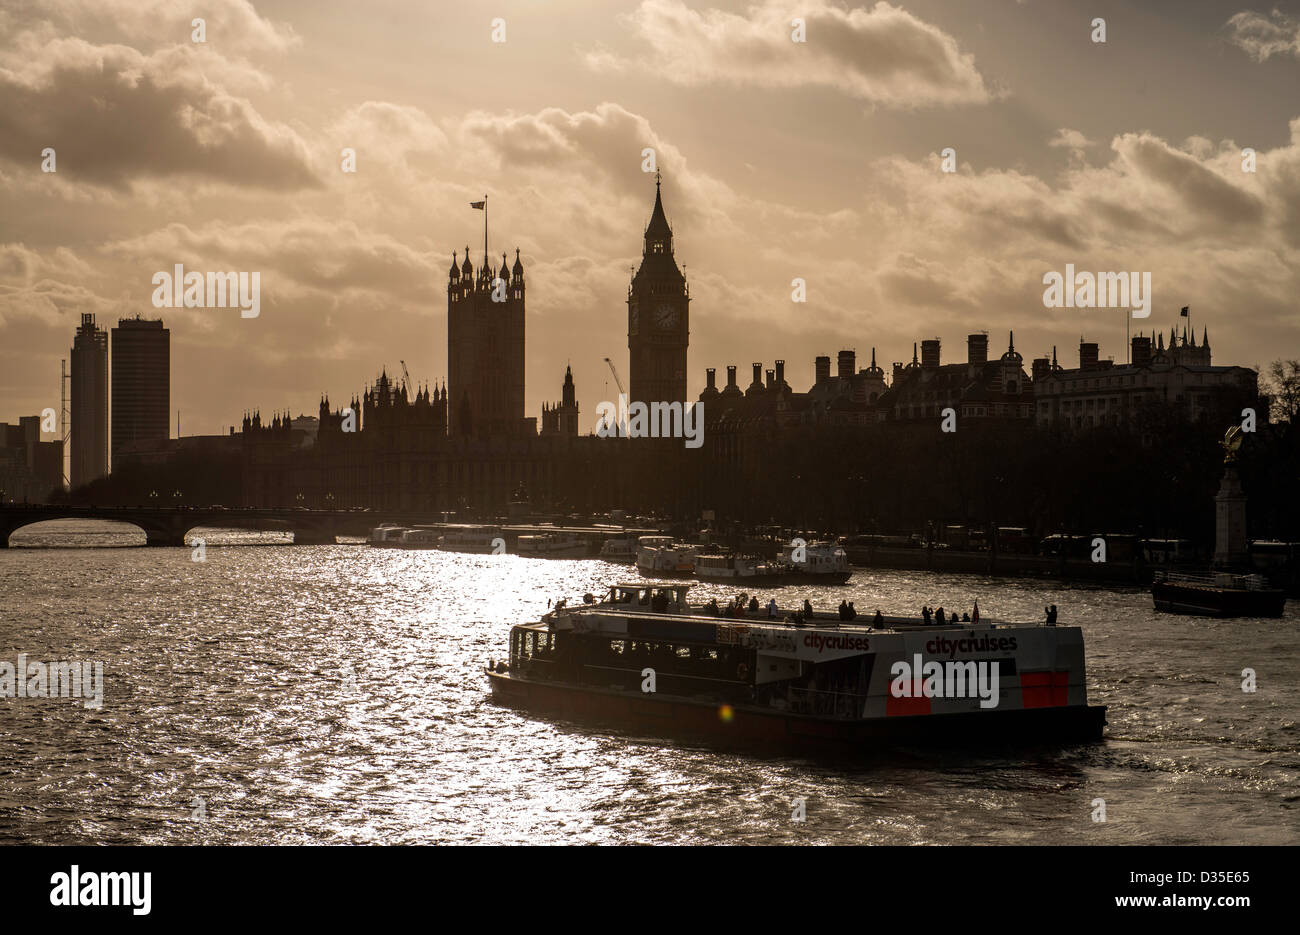 River cruise boat in the River Thames and Big Ben London England Great Britain UK - Stock Image